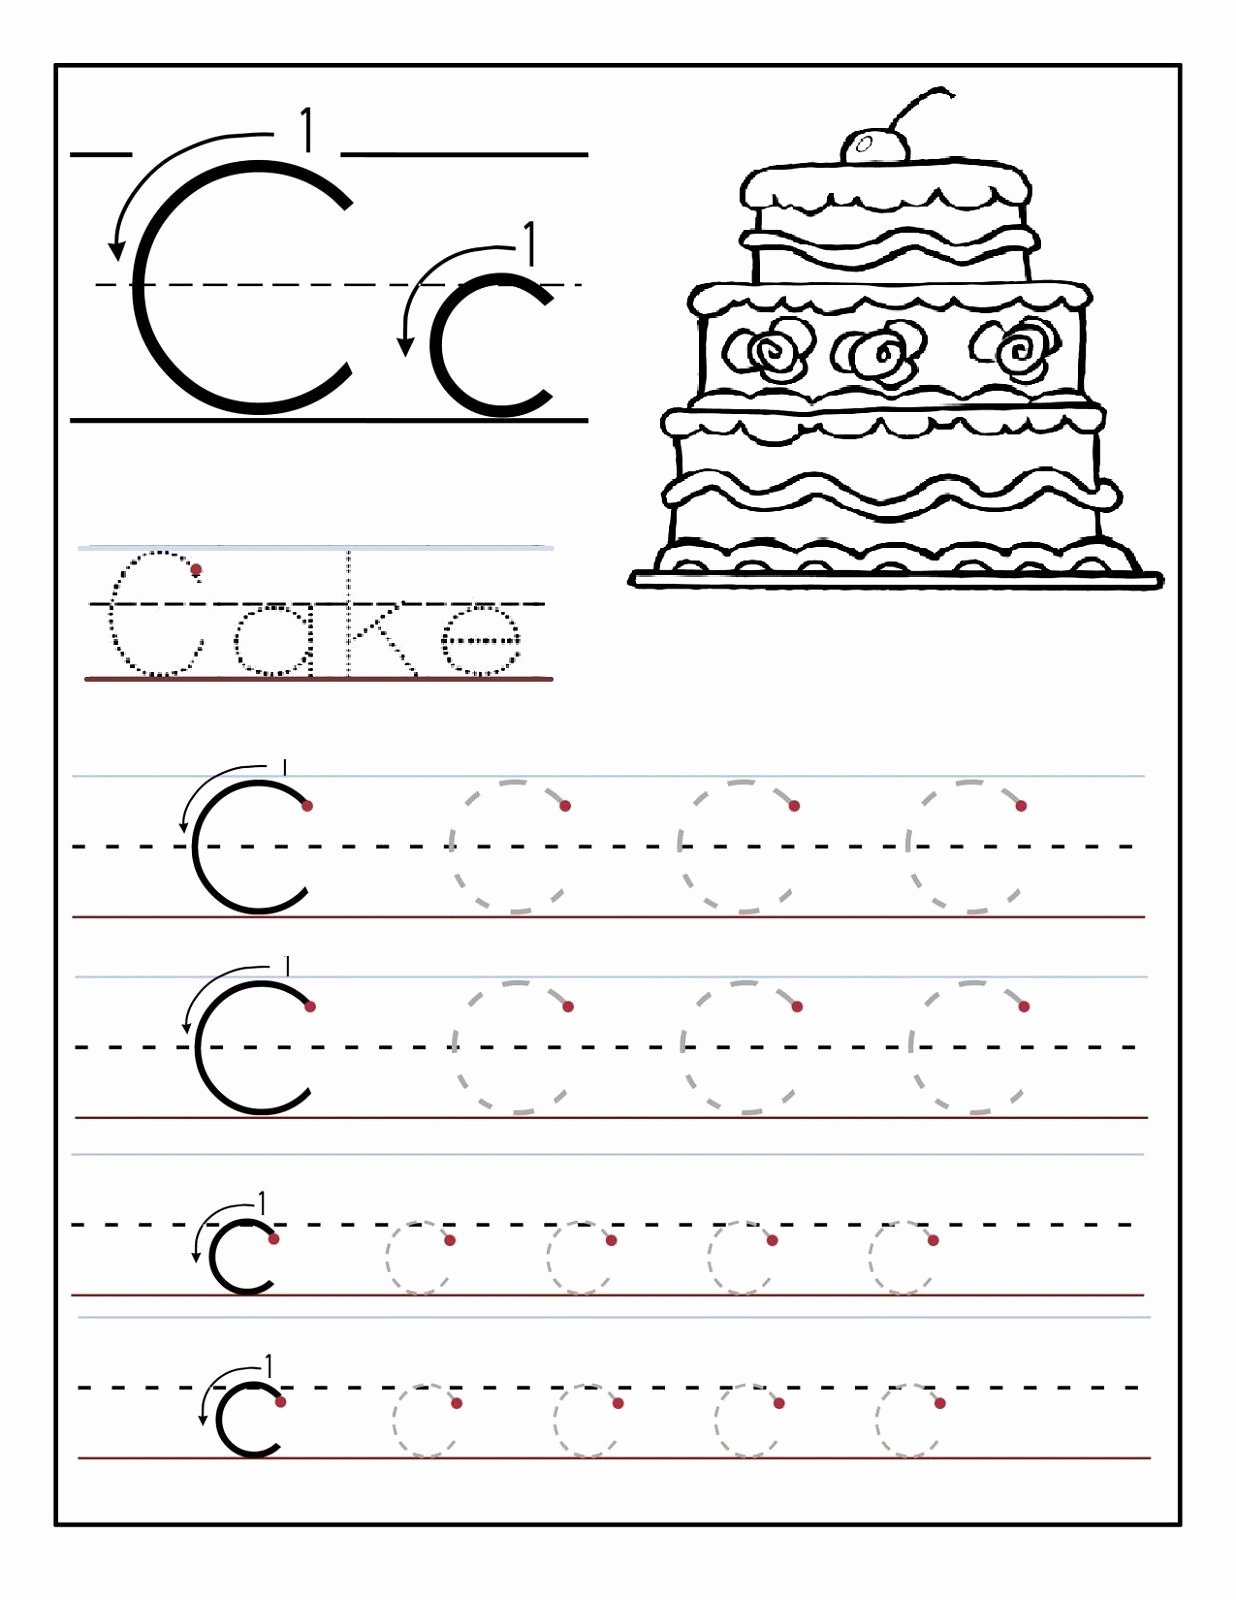 Letter C Tracing Worksheets for Preschoolers Best Of Trace the Letter C Worksheets